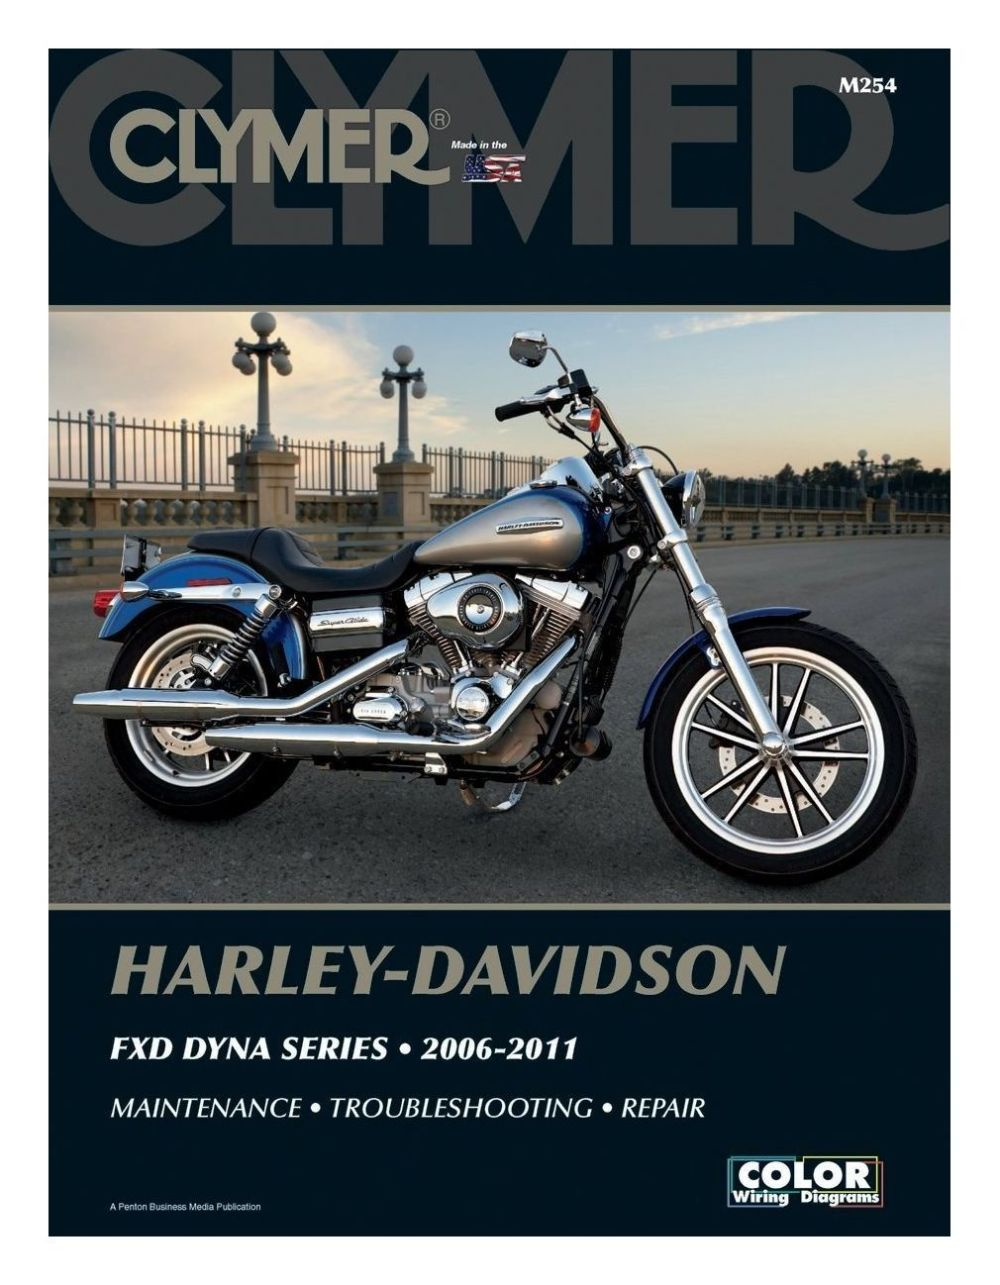 medium resolution of clymer manual harley davidson fxd dyna series 2006 2011 10 5 20